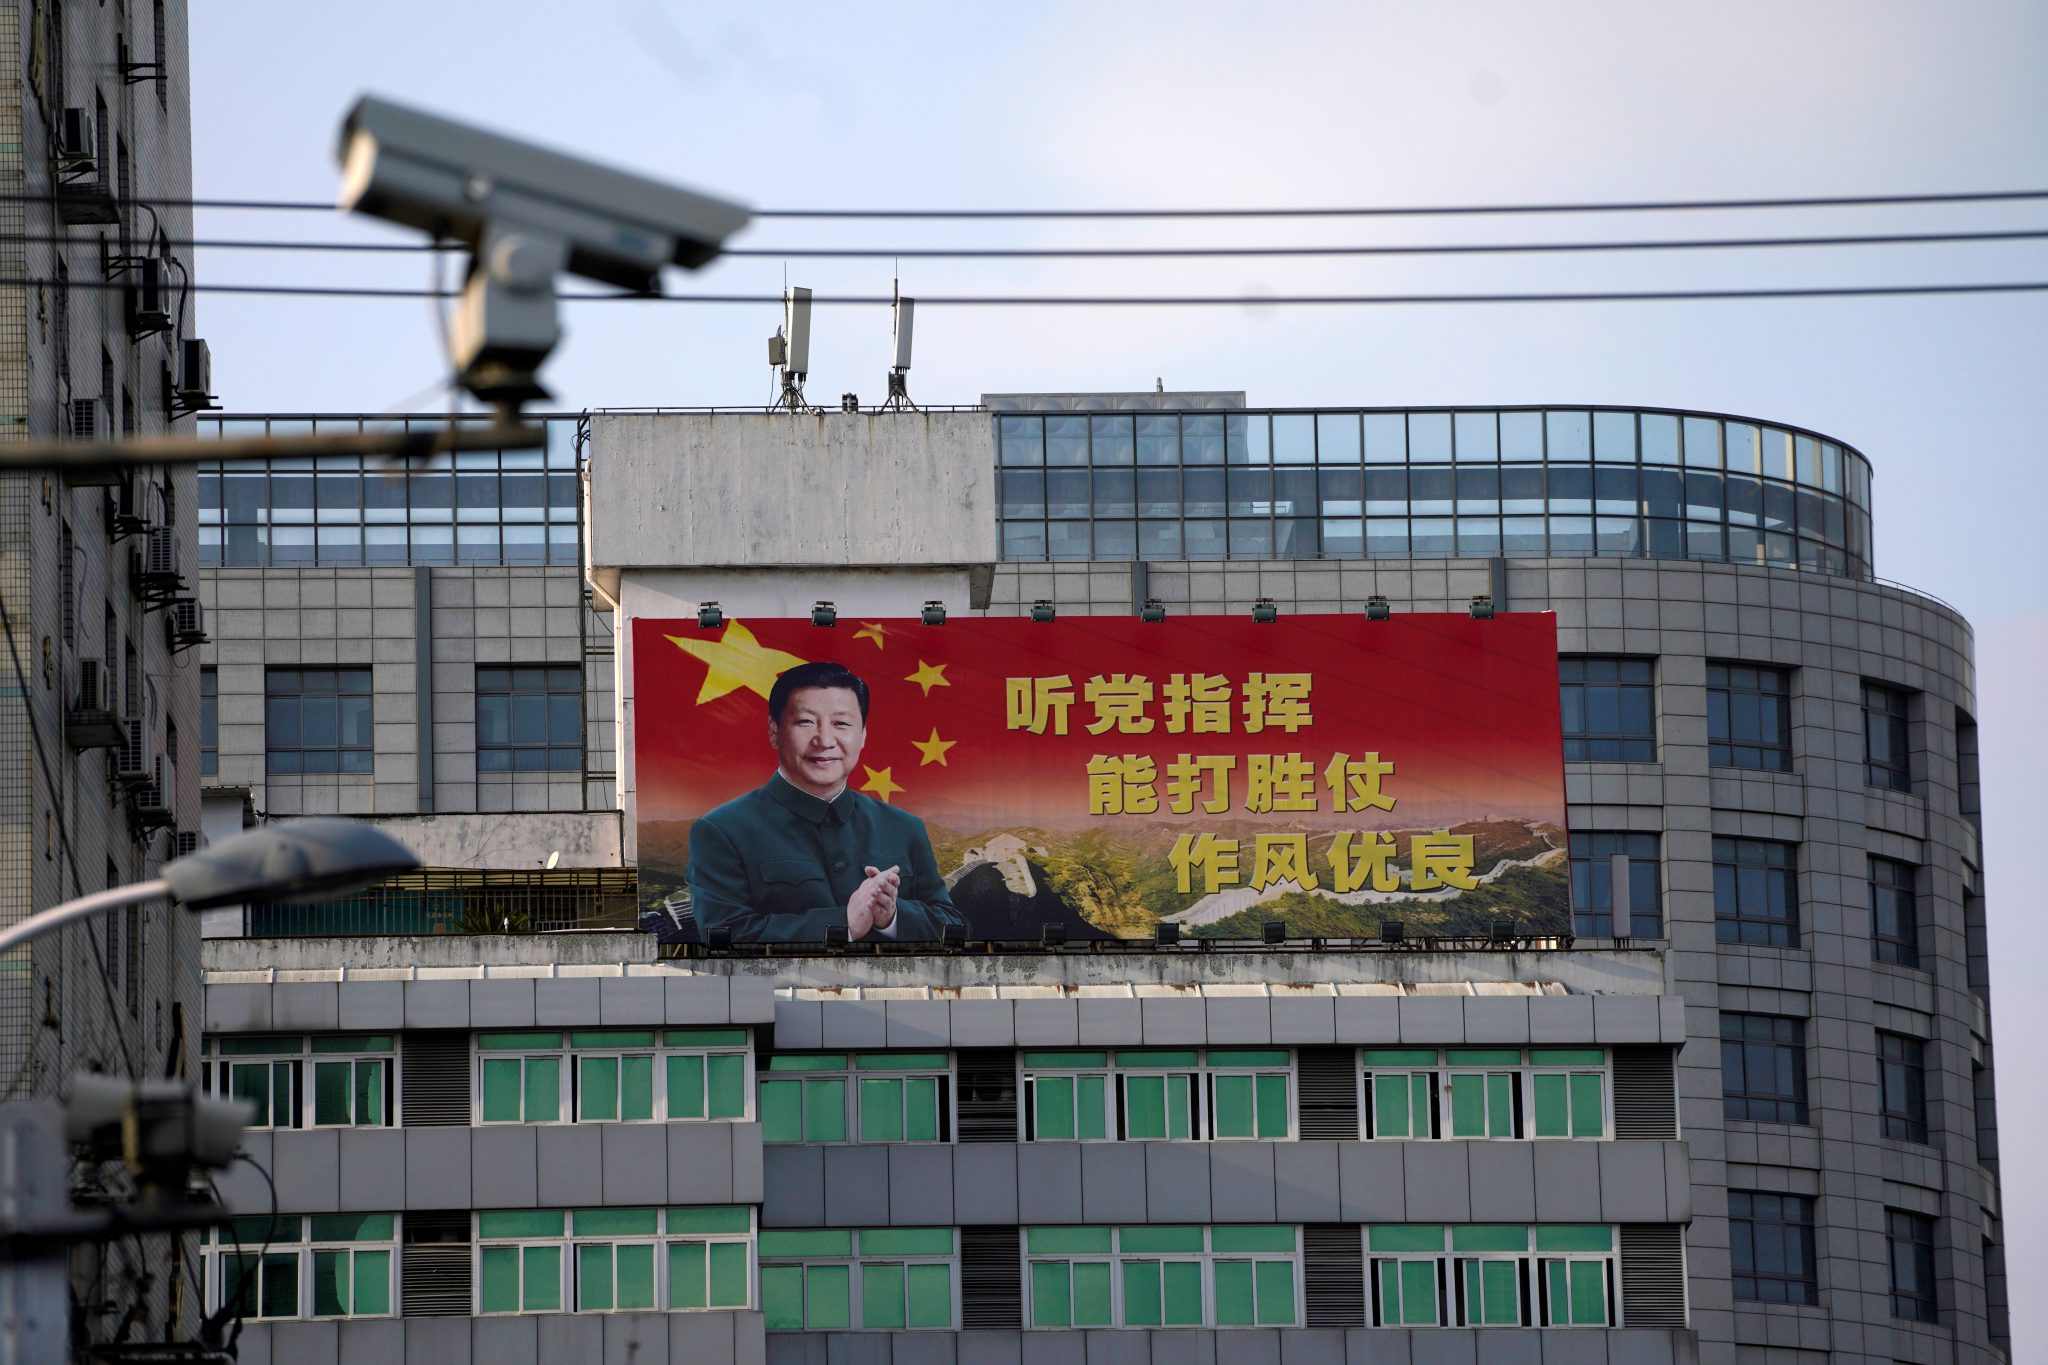 Xi?s new power and China?s economic and social goals